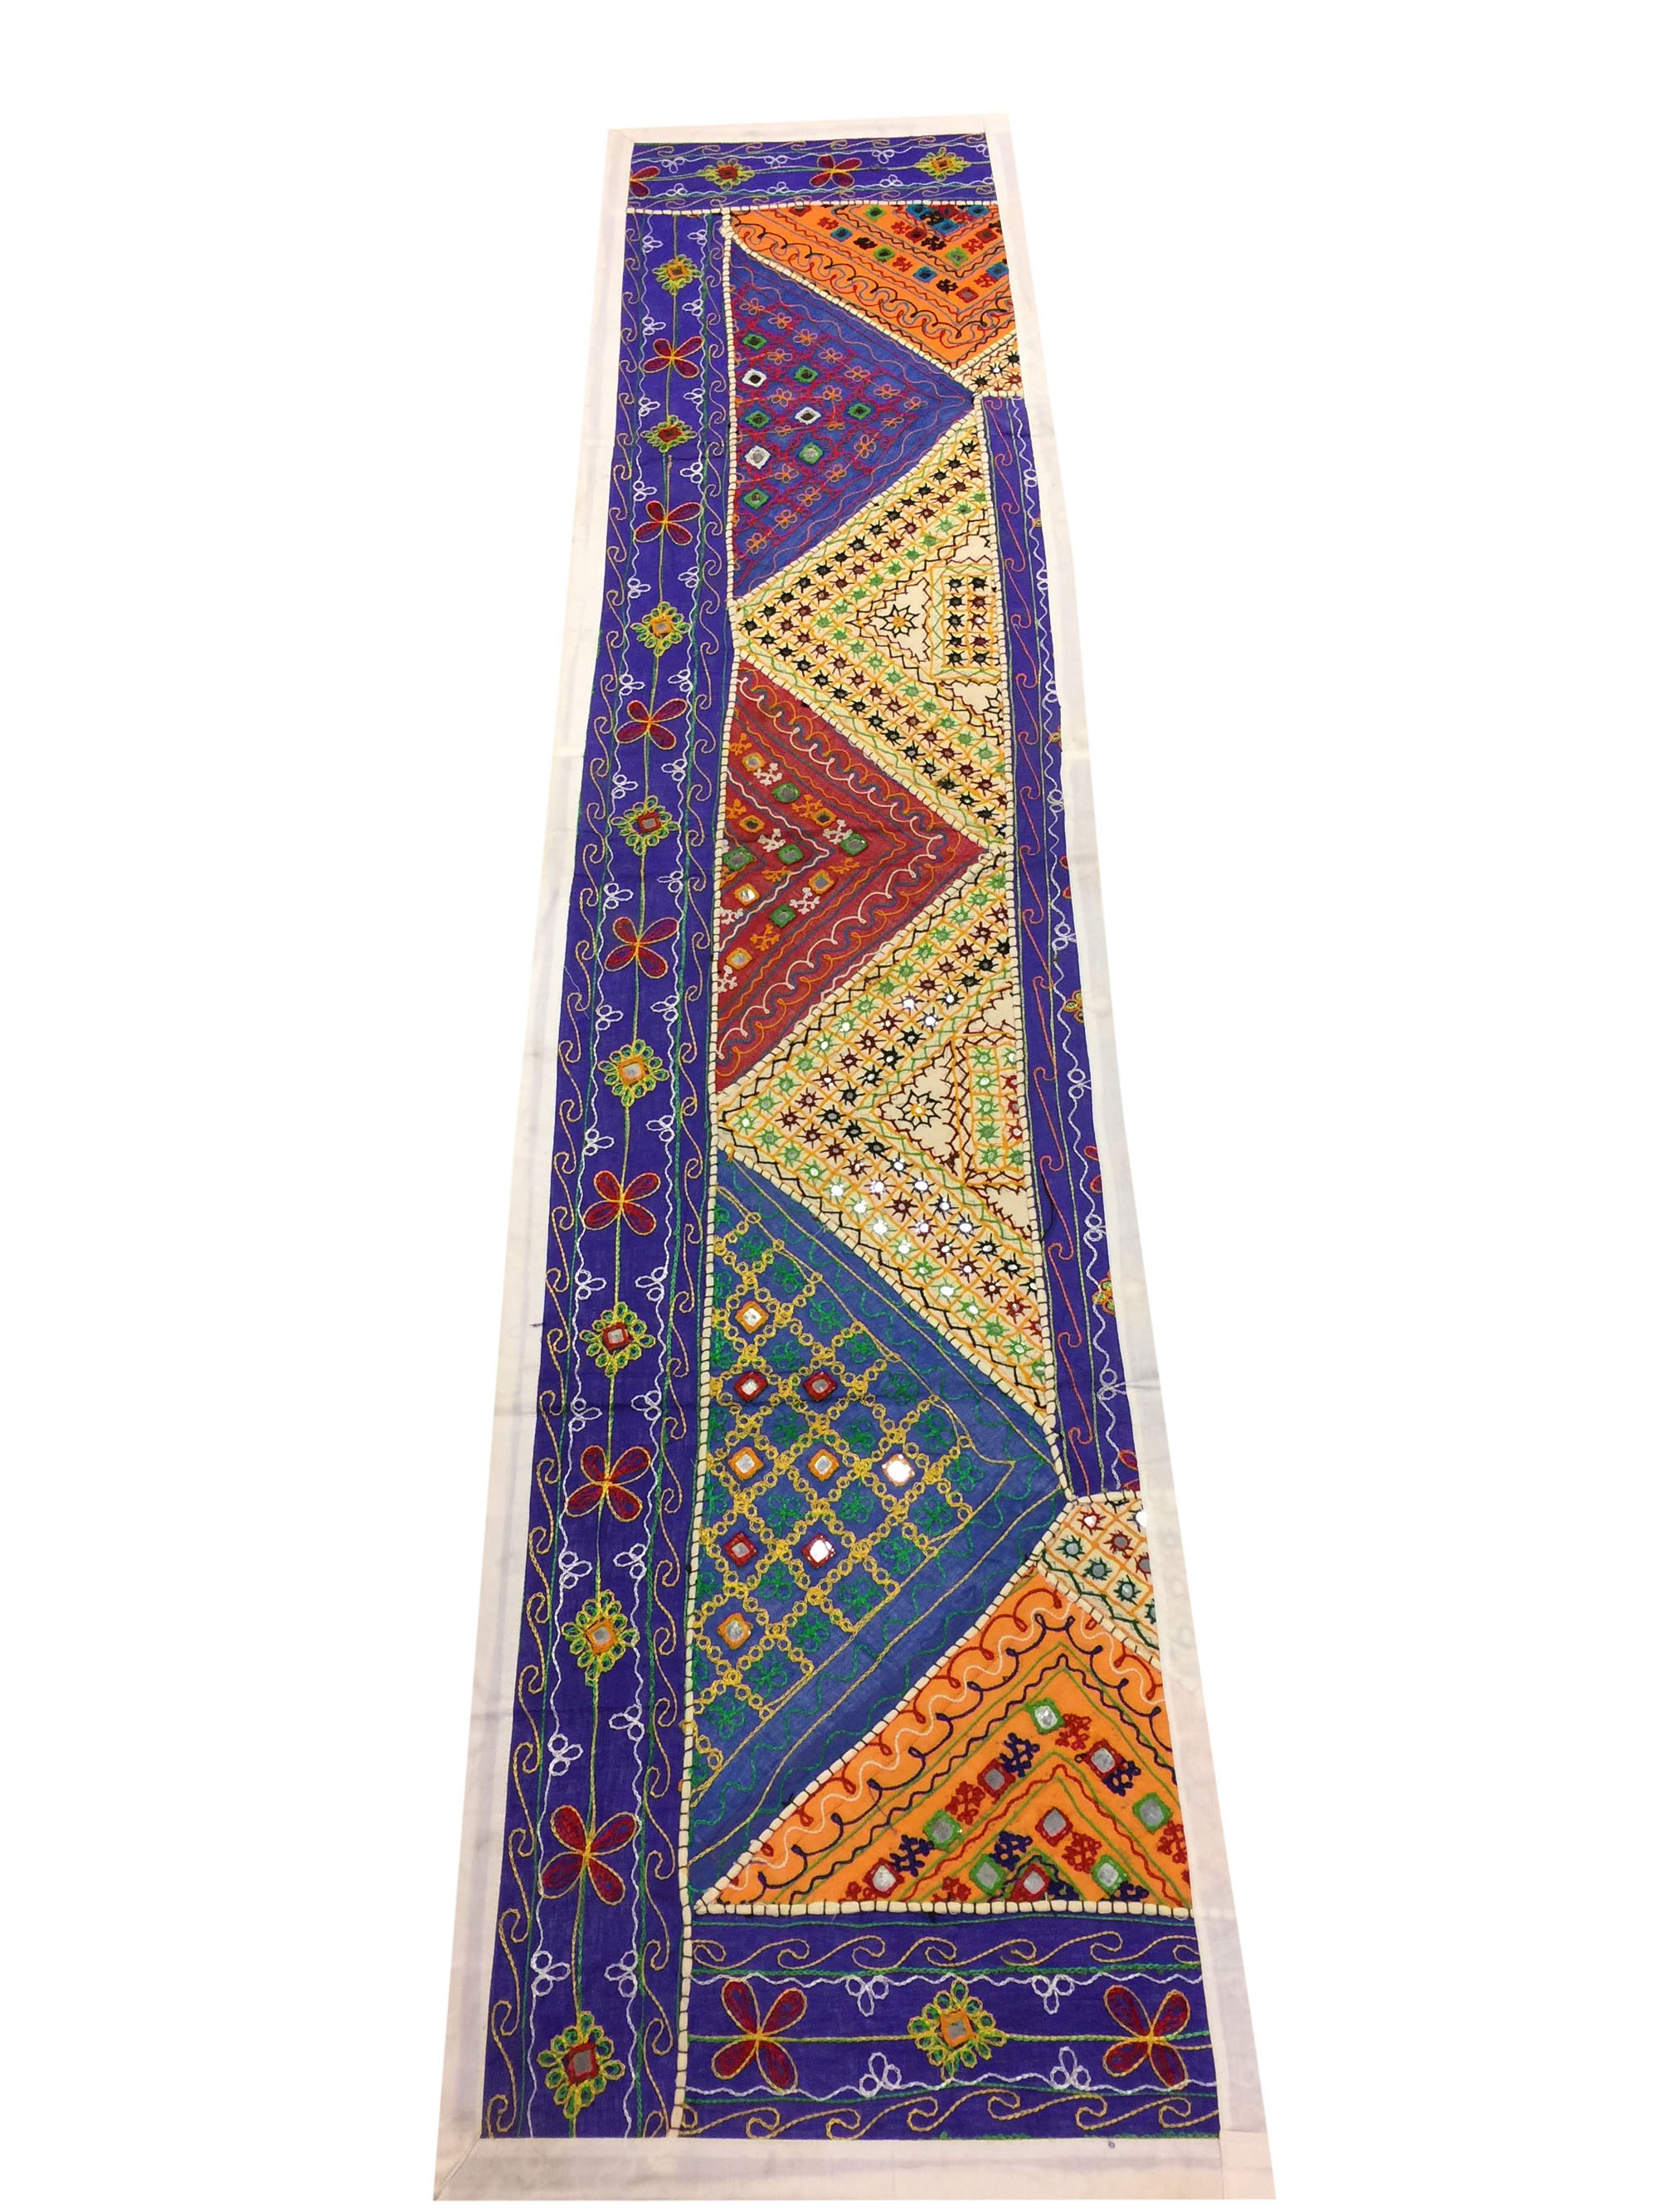 Bohemian Indian Beaded Embroidered Vintage Table Runner